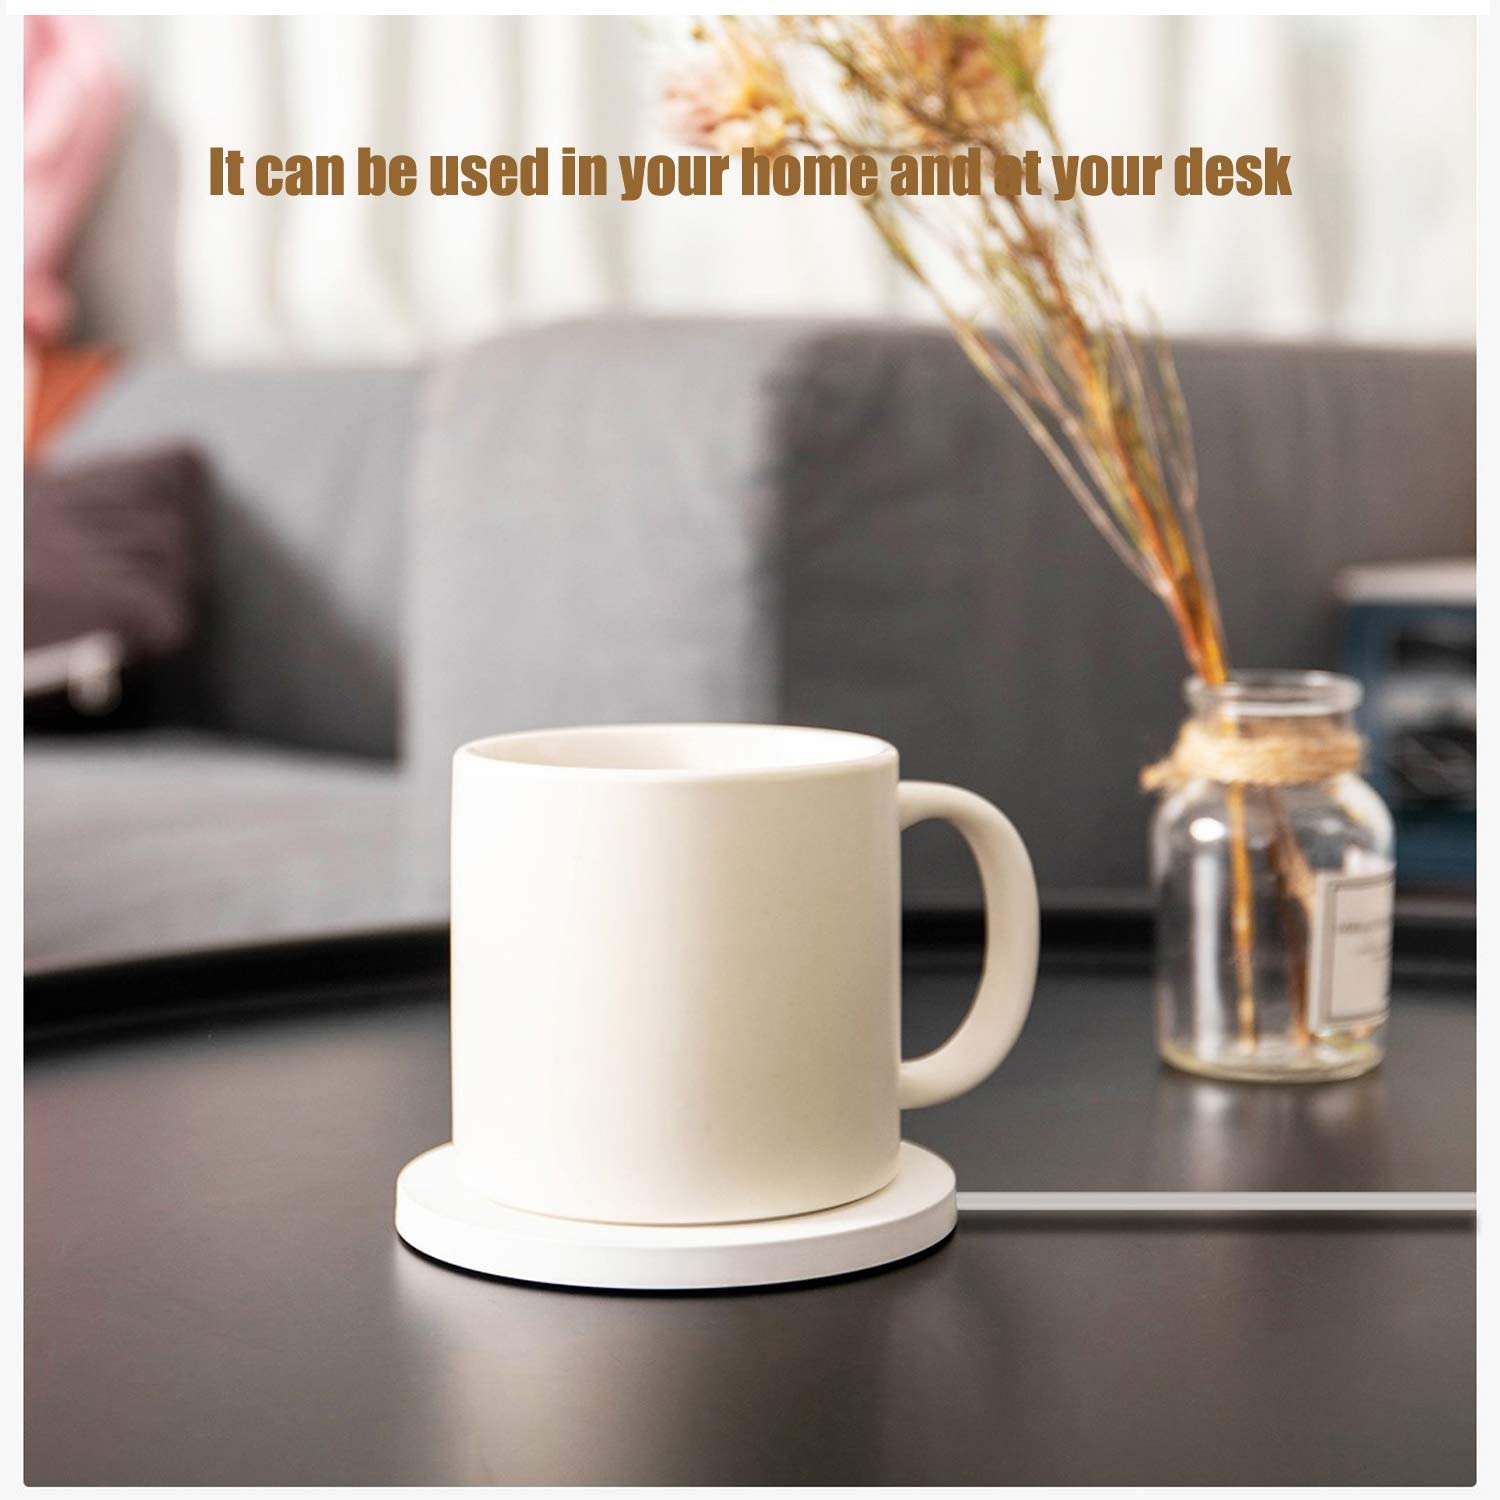 Smart warming coffee mug /& Tea Cup for Office Desk Use Black with Euro plug Electric Beverage warmer with Automatic temperature control with wireless charging